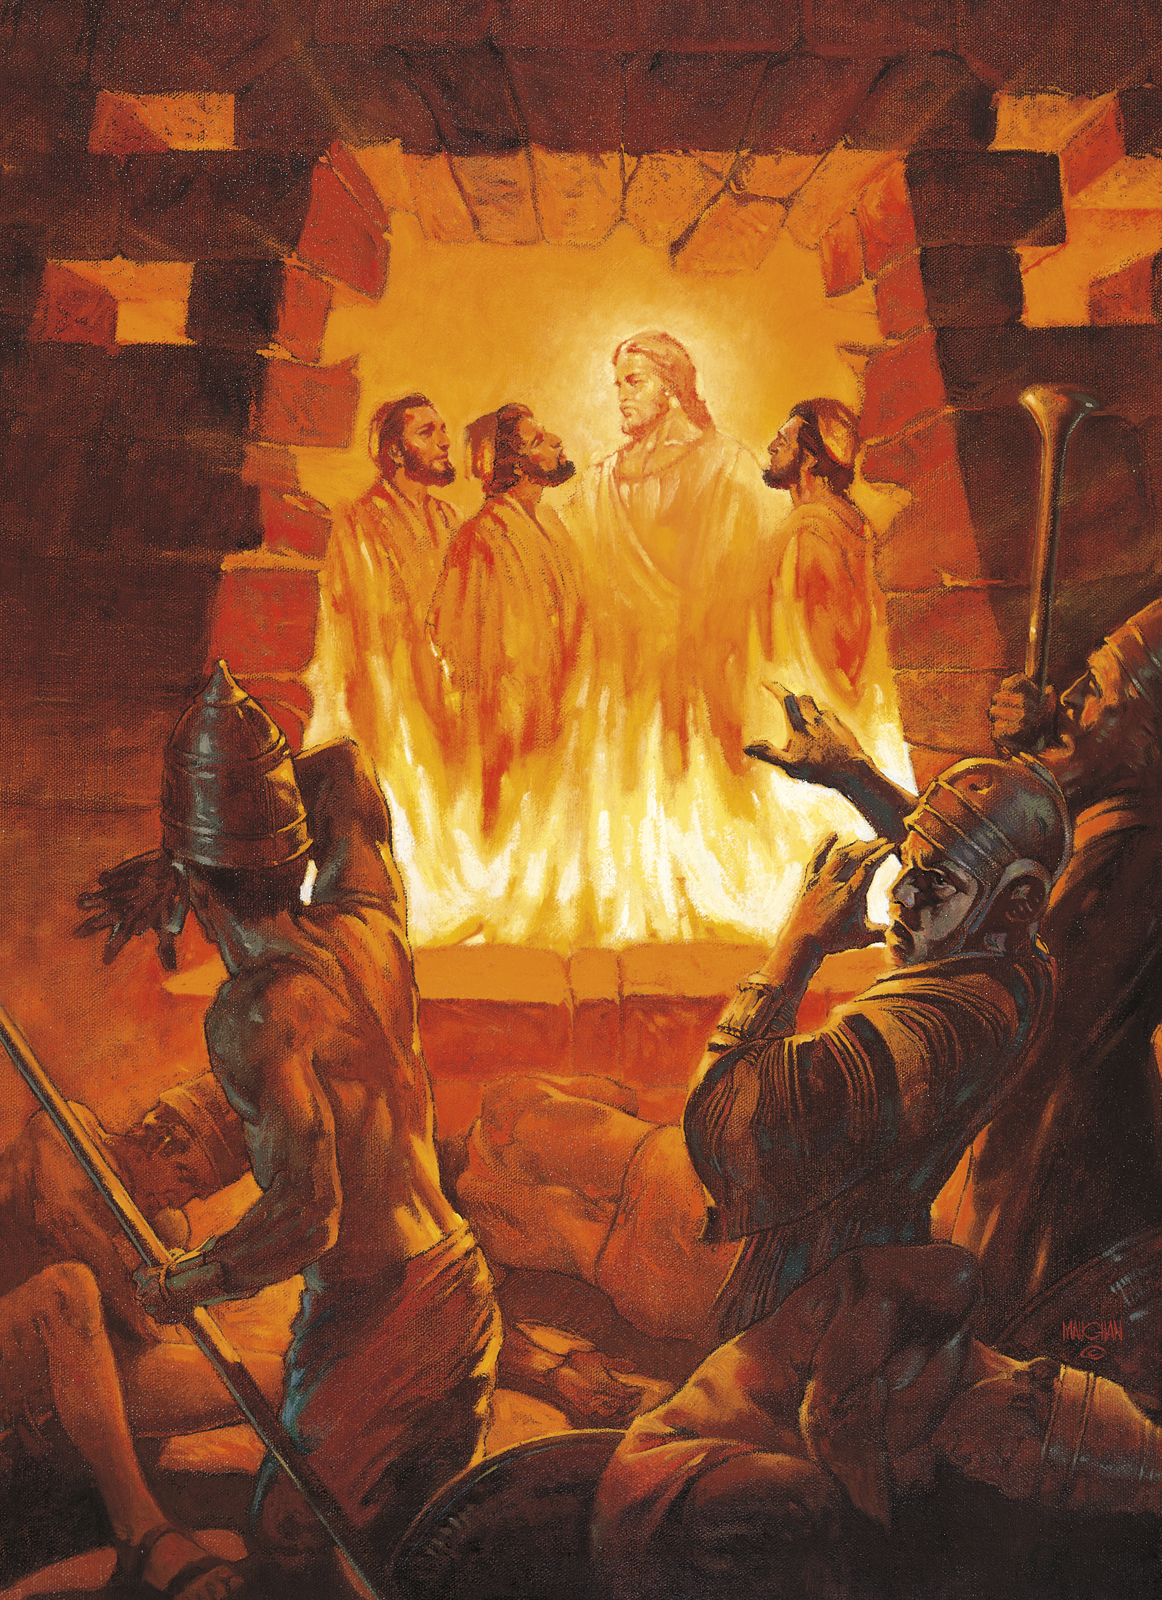 Three Men In The Fiery Furnace  Shadrach  Meshach  And